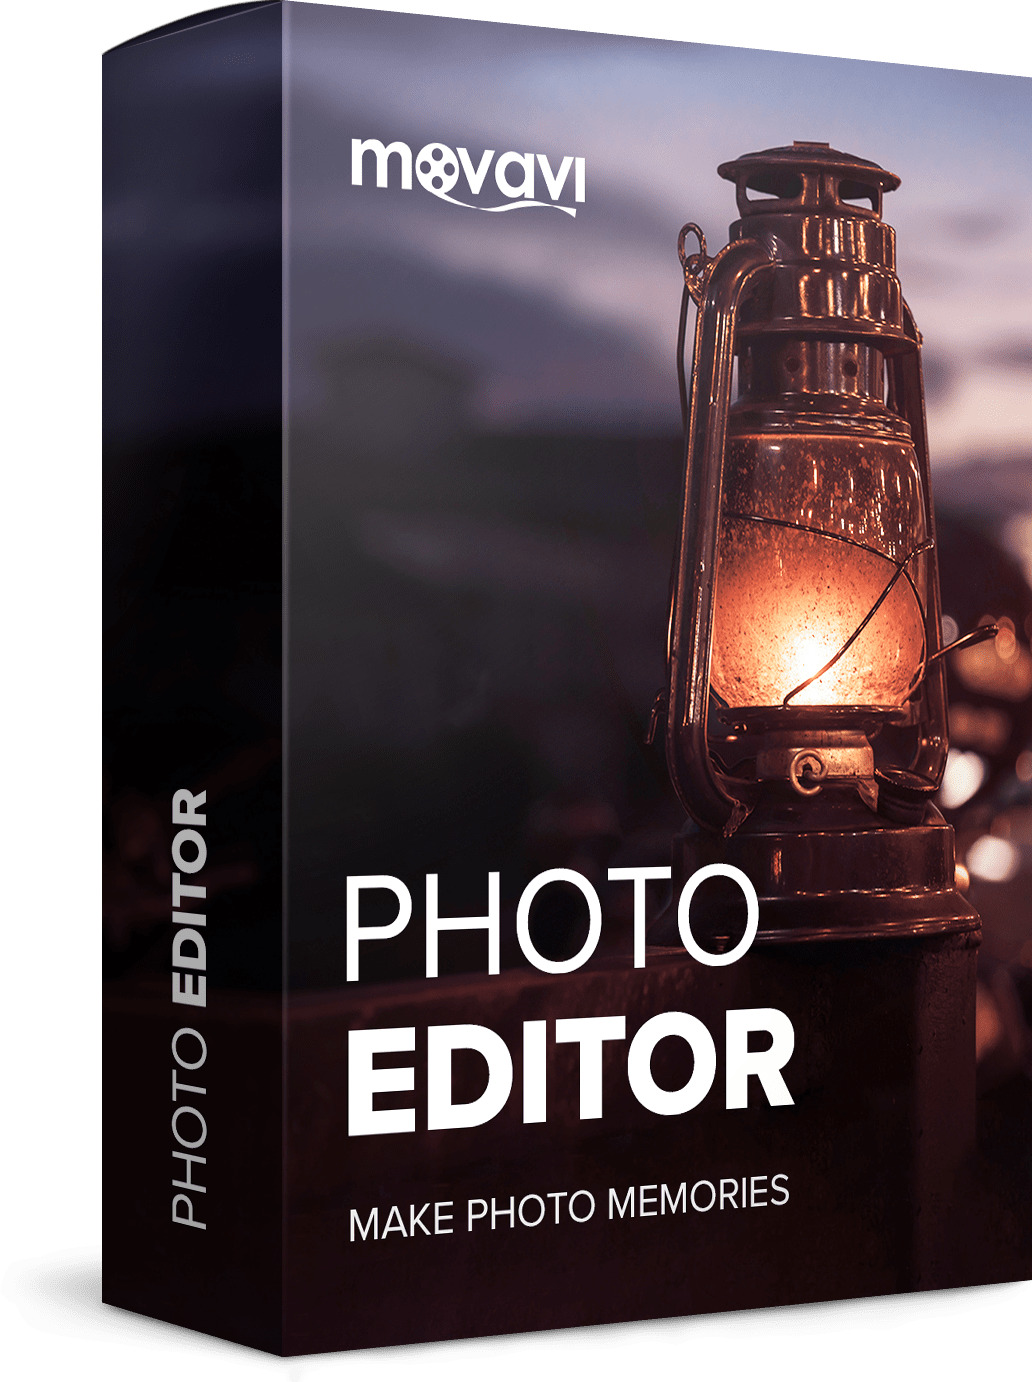 Movavi Photo Editor 2020, Adjust picture quality,Delete elements, {for MAC}